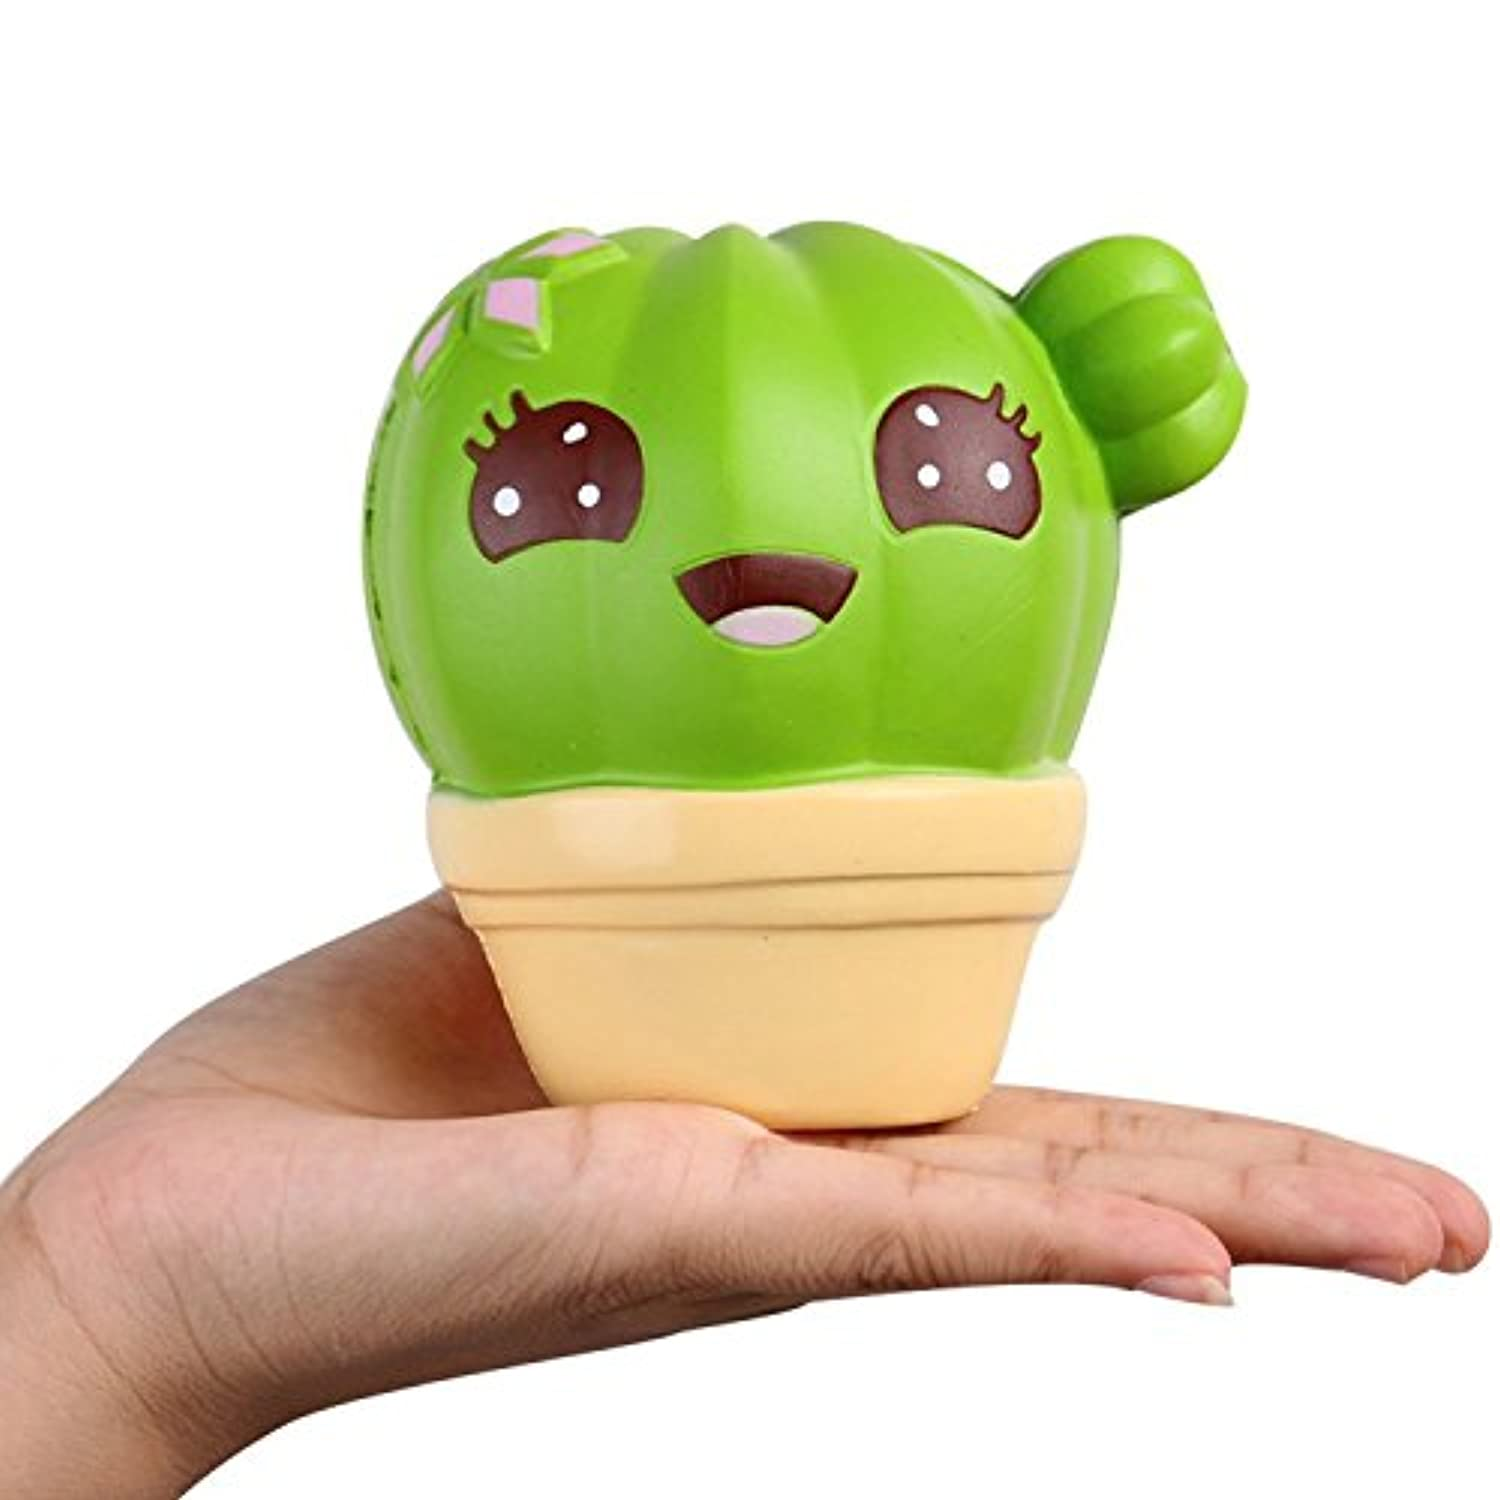 melbee 1pc / 11 cmジャンボSquishy Cactus SquishyおもちゃCactus装飾Relieves応力Squeeze Healing Slow RisingソフトCartoon Fun子供プレゼント